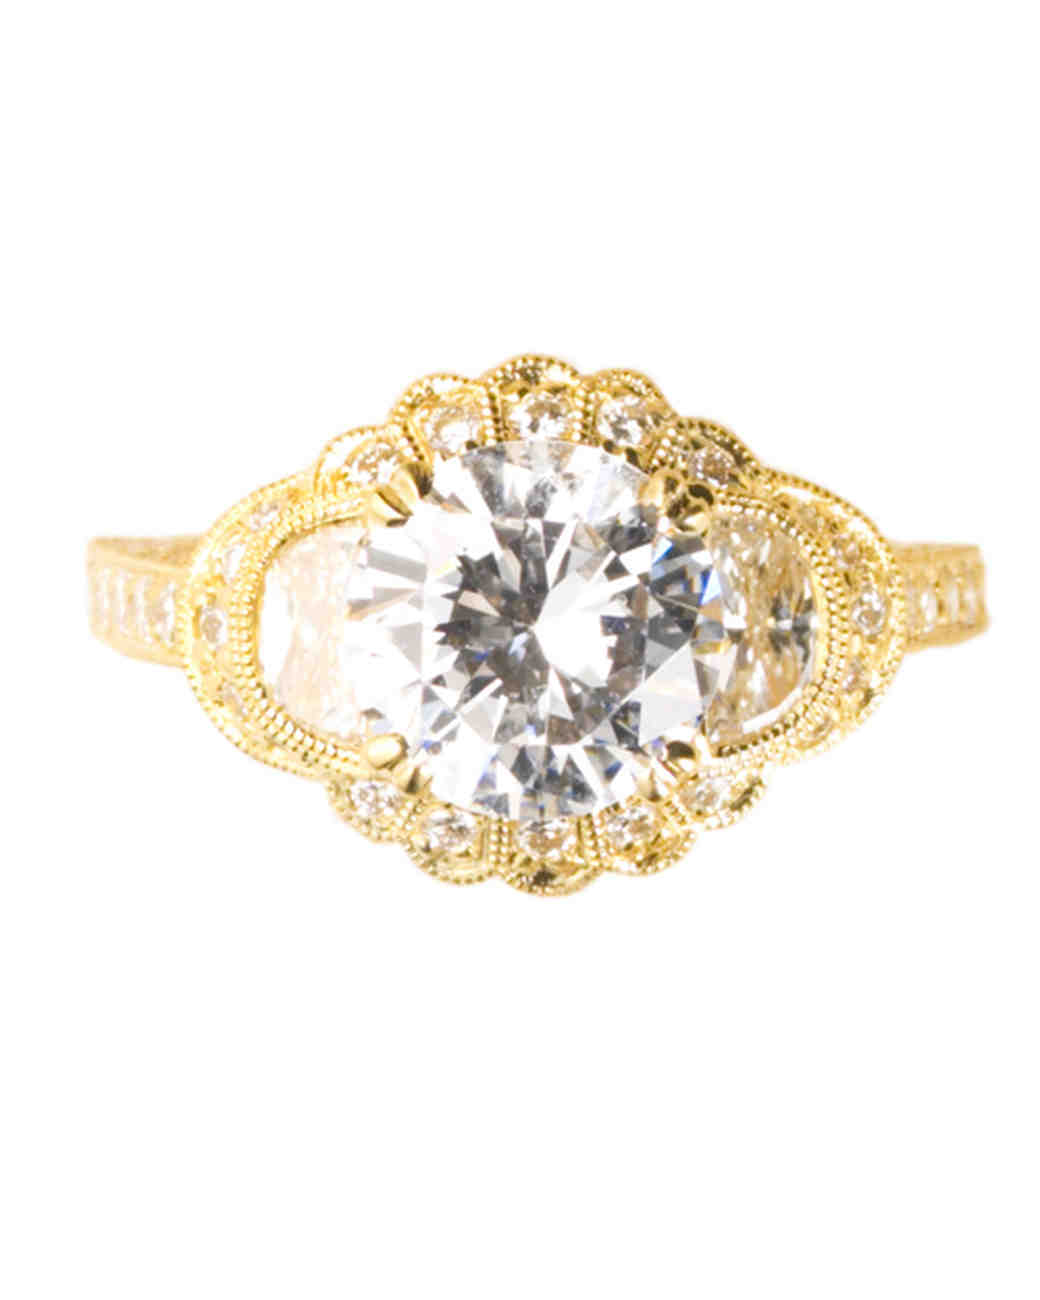 msw_sum10_yellow_ring3_rina.jpg